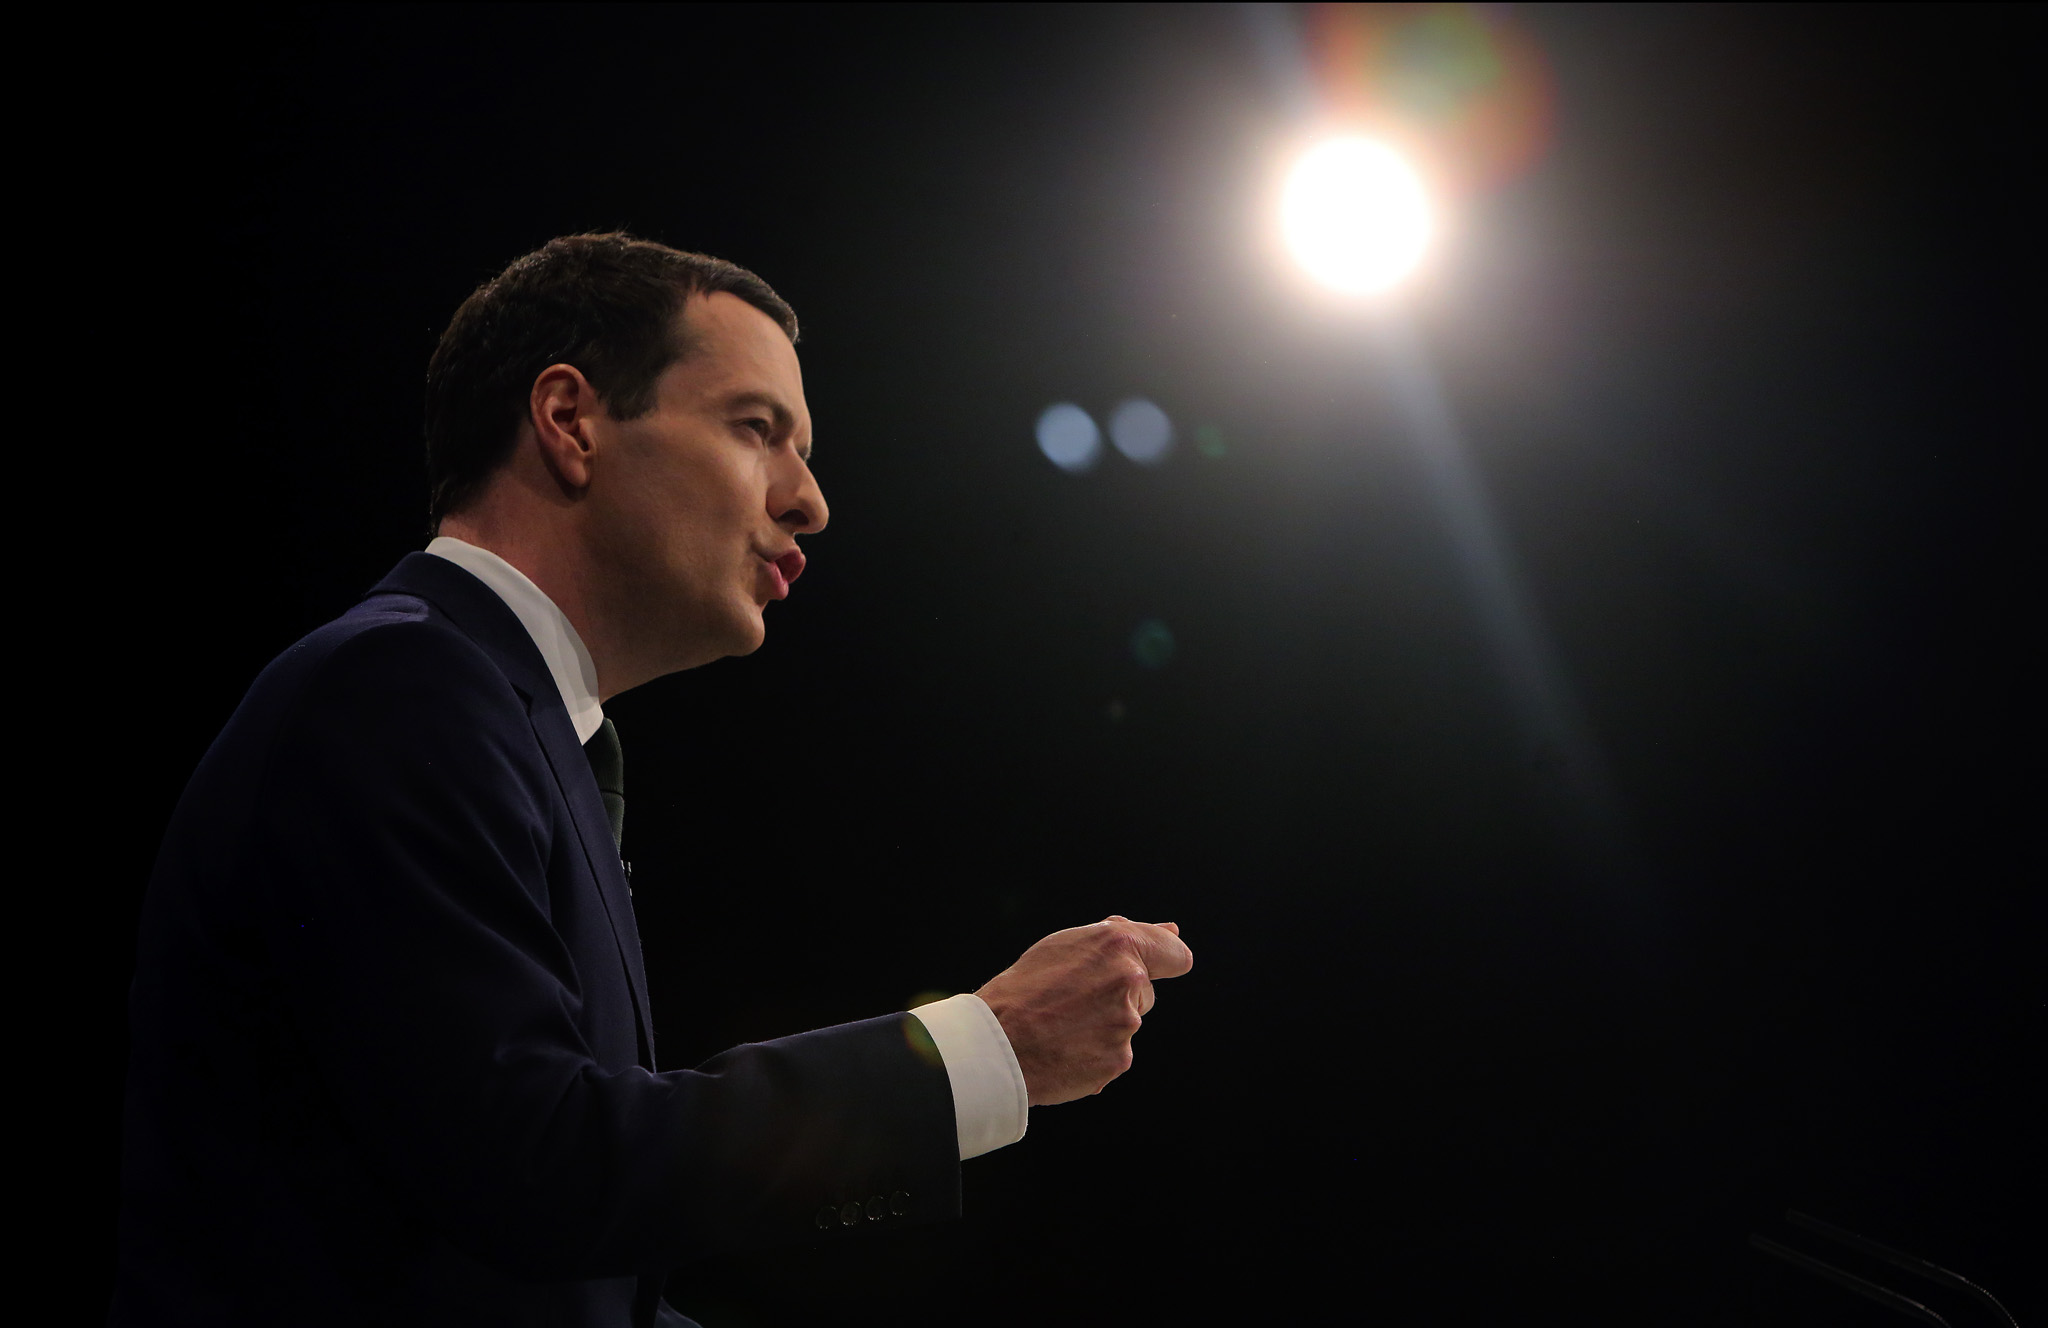 Chancellor of the Exchequer, George Osborne, delivers his keynote speech at the Conservative Party conference in Manchester.